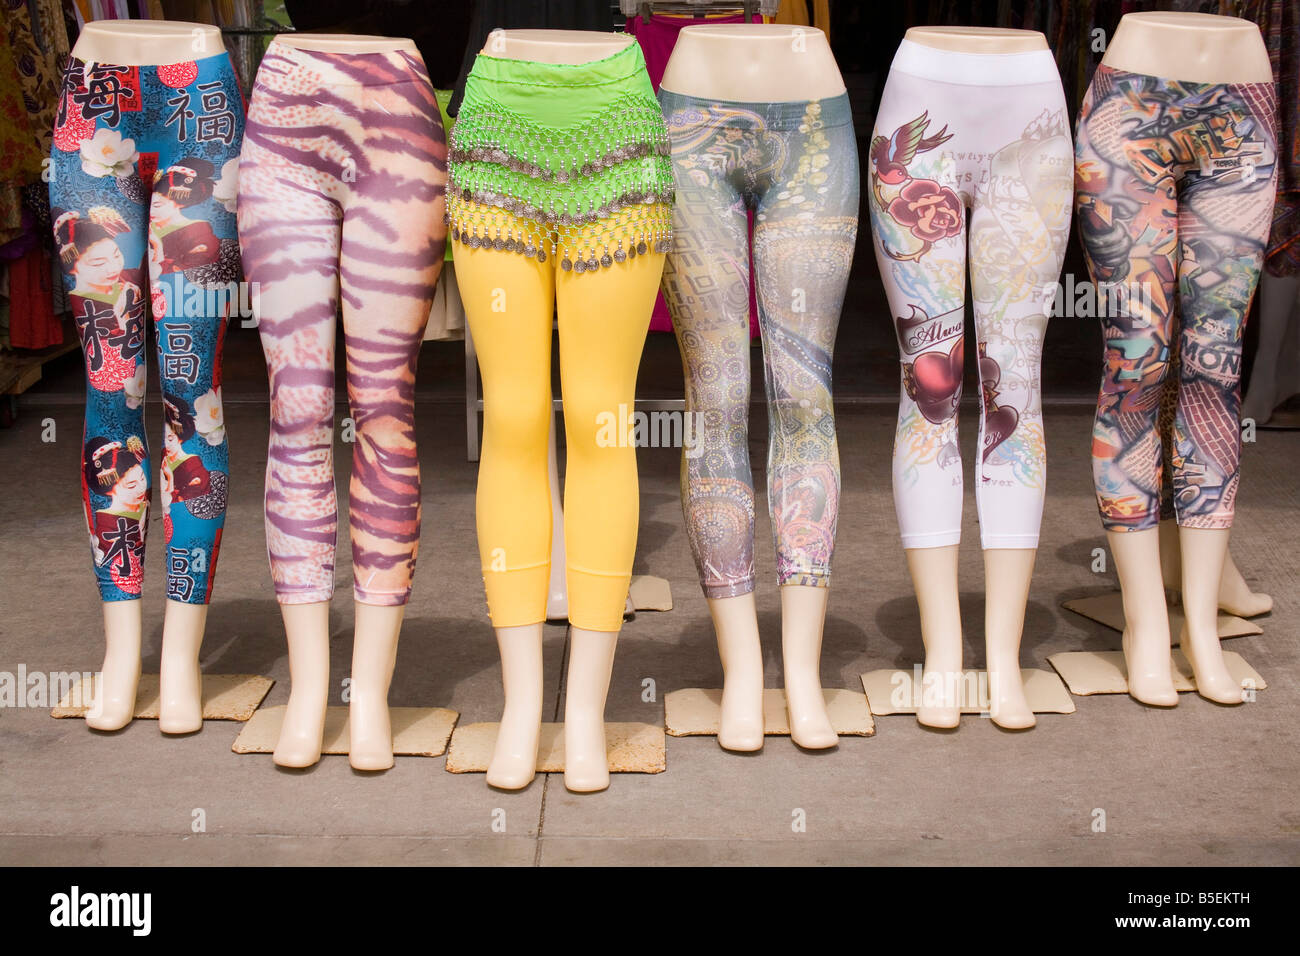 A group of mannequin legs displayed outside a casual clothing shop, each wearing a different pair of colorful leggings - Stock Image